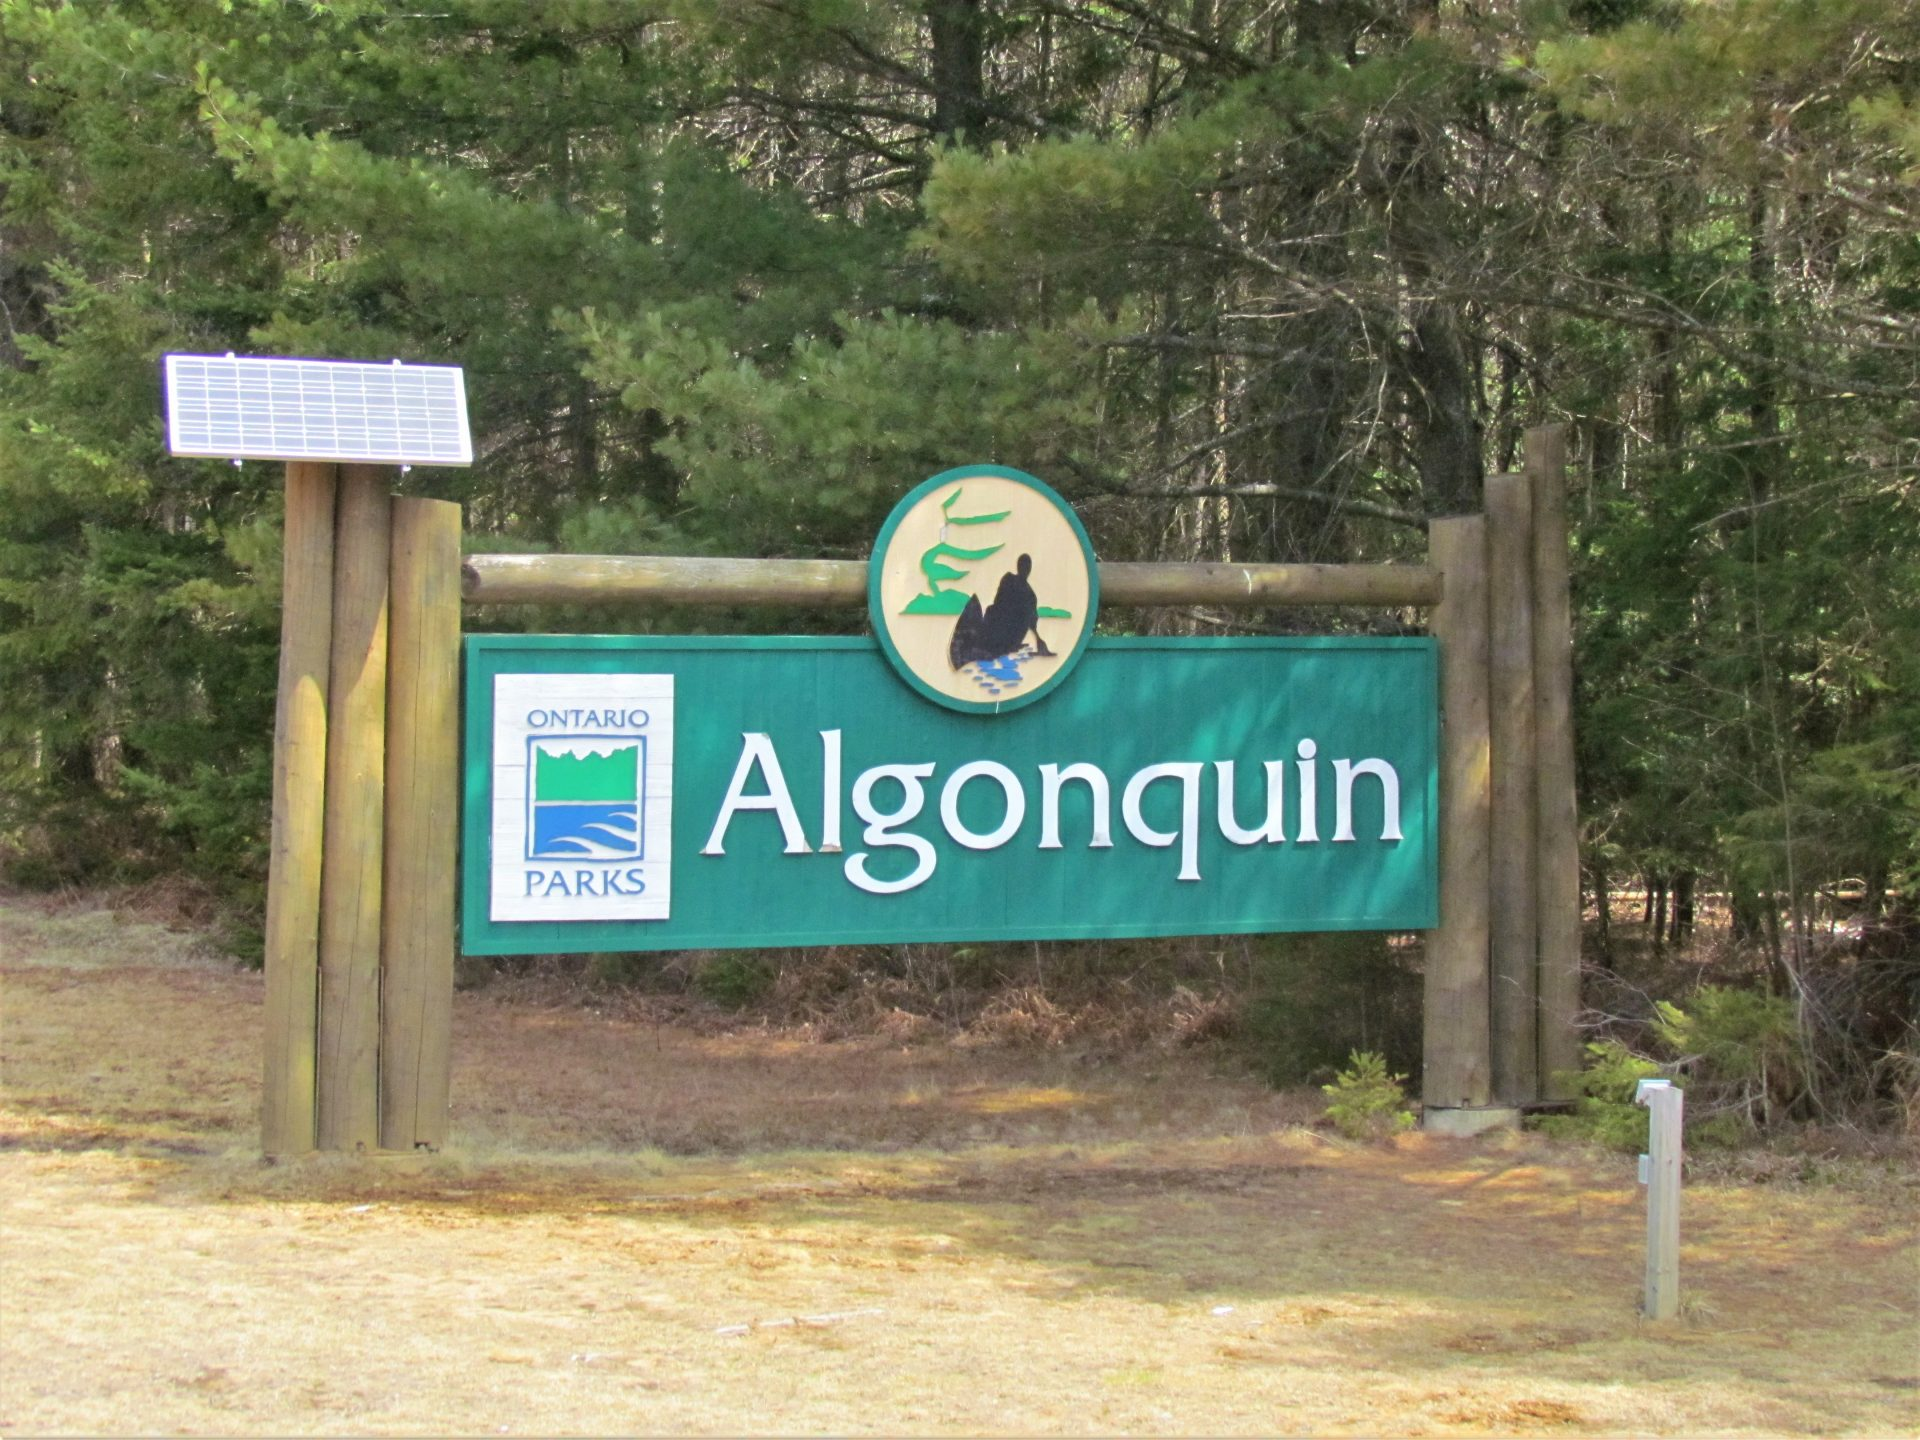 Algonquin Provincial Park – May 2 to May 11, 2020